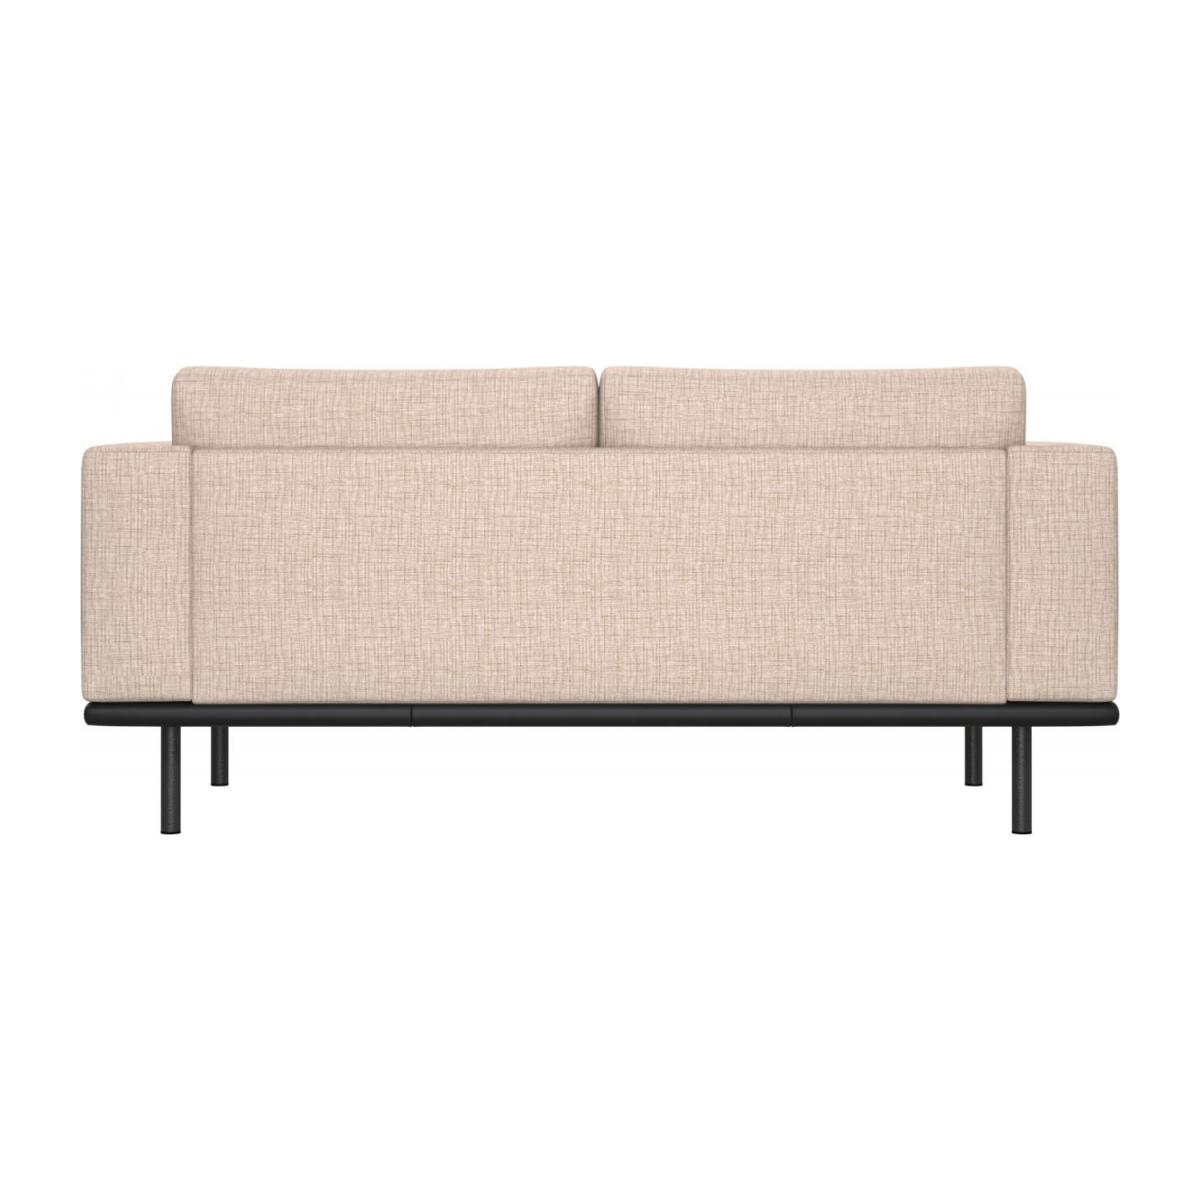 2 seater sofa in Ancio fabric, nature with base in black leather n°3